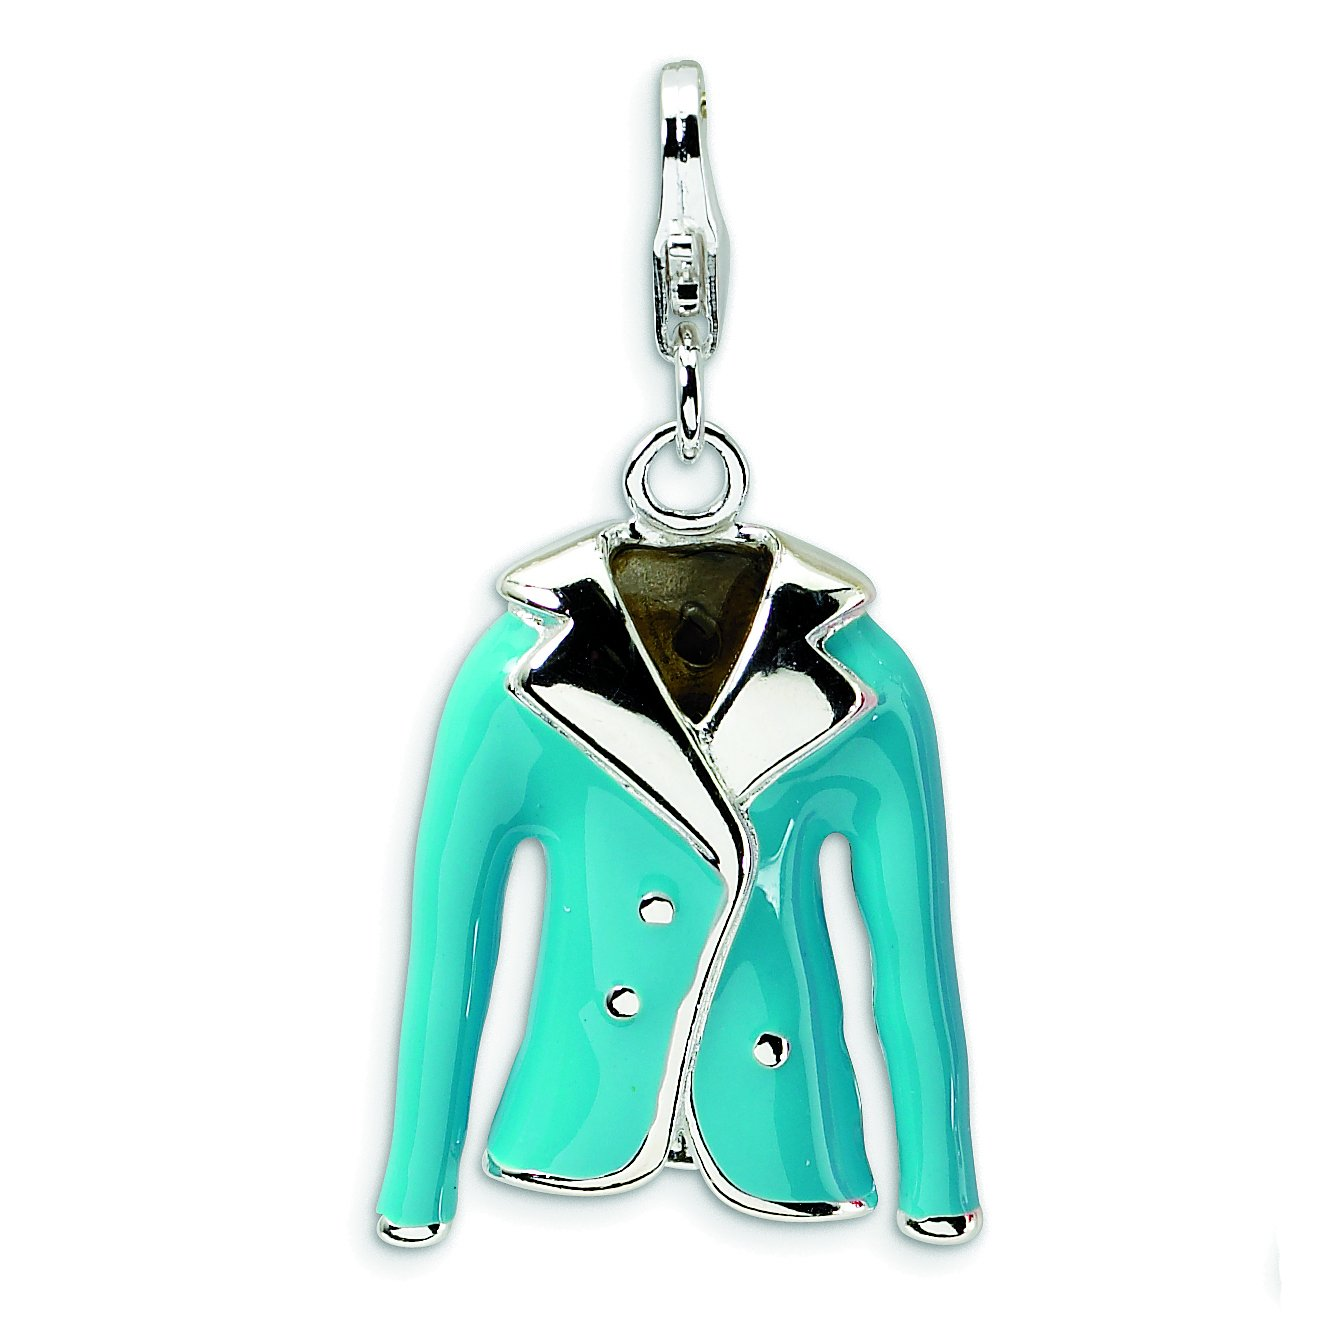 Amore La Vita Sterling Silver 3-D Enameled Blue Jacket with Lobster Clasp Charm